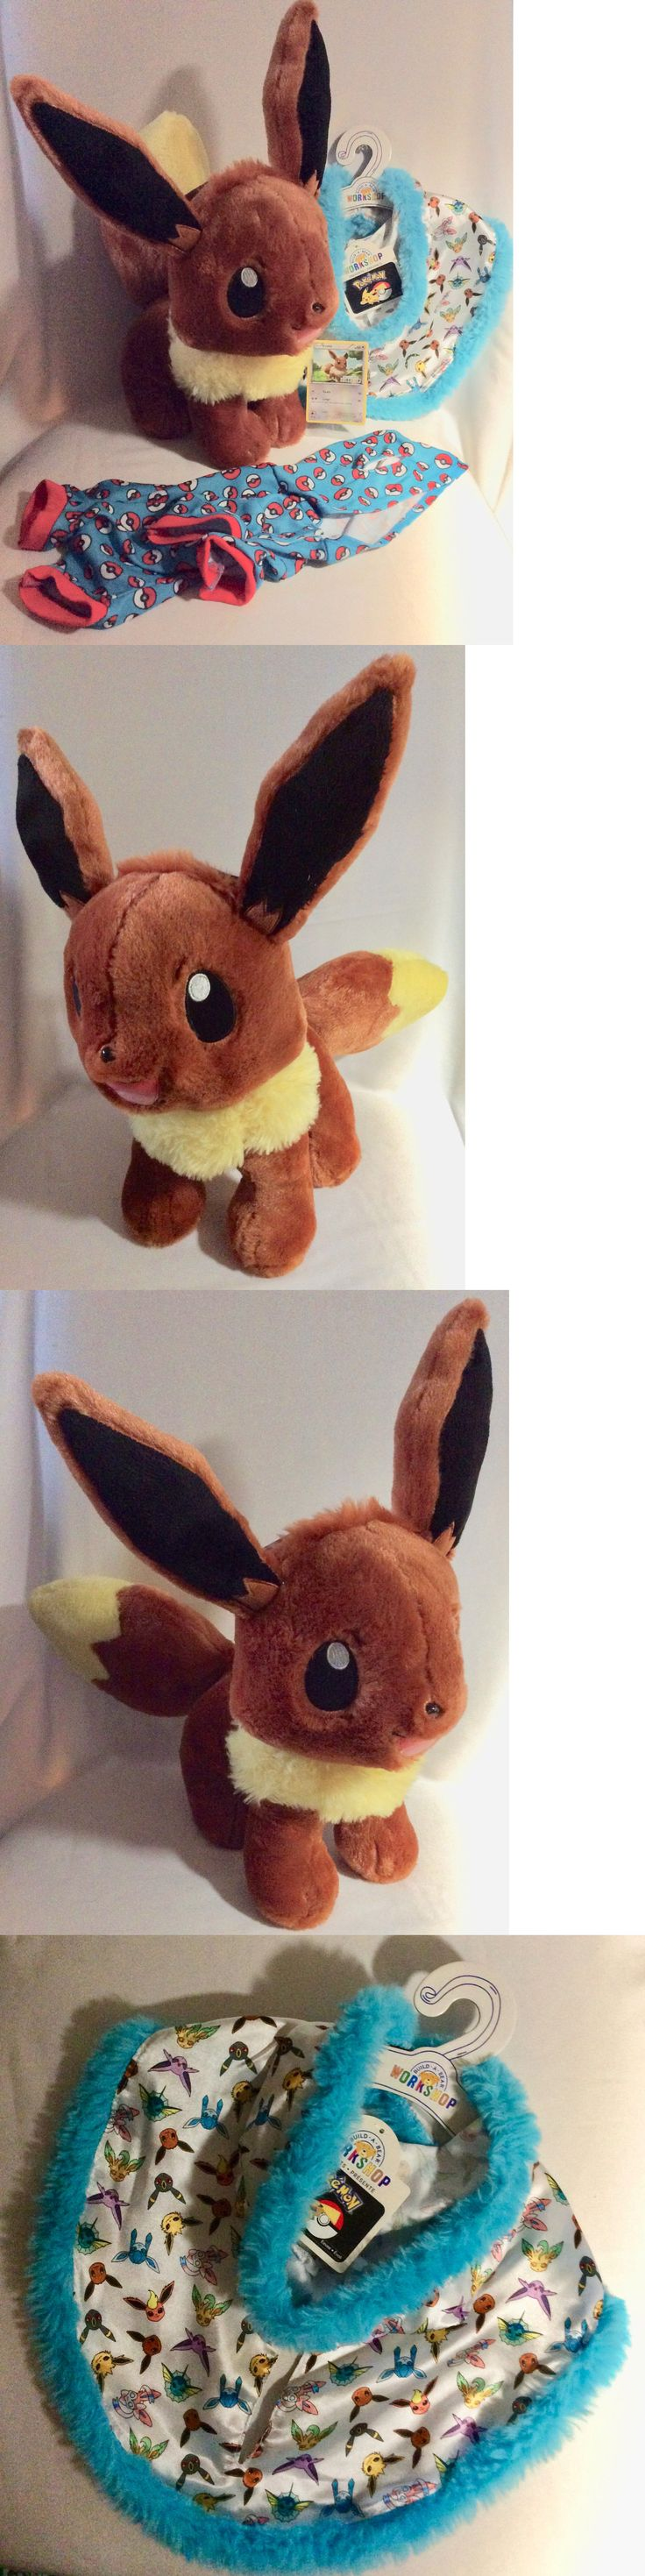 Pok mon 1524: Build A Bear Pokemon Eevee W Sound, Babw Exclusive Pokemon Tcg Card And More! -> BUY IT NOW ONLY: $49.99 on eBay!